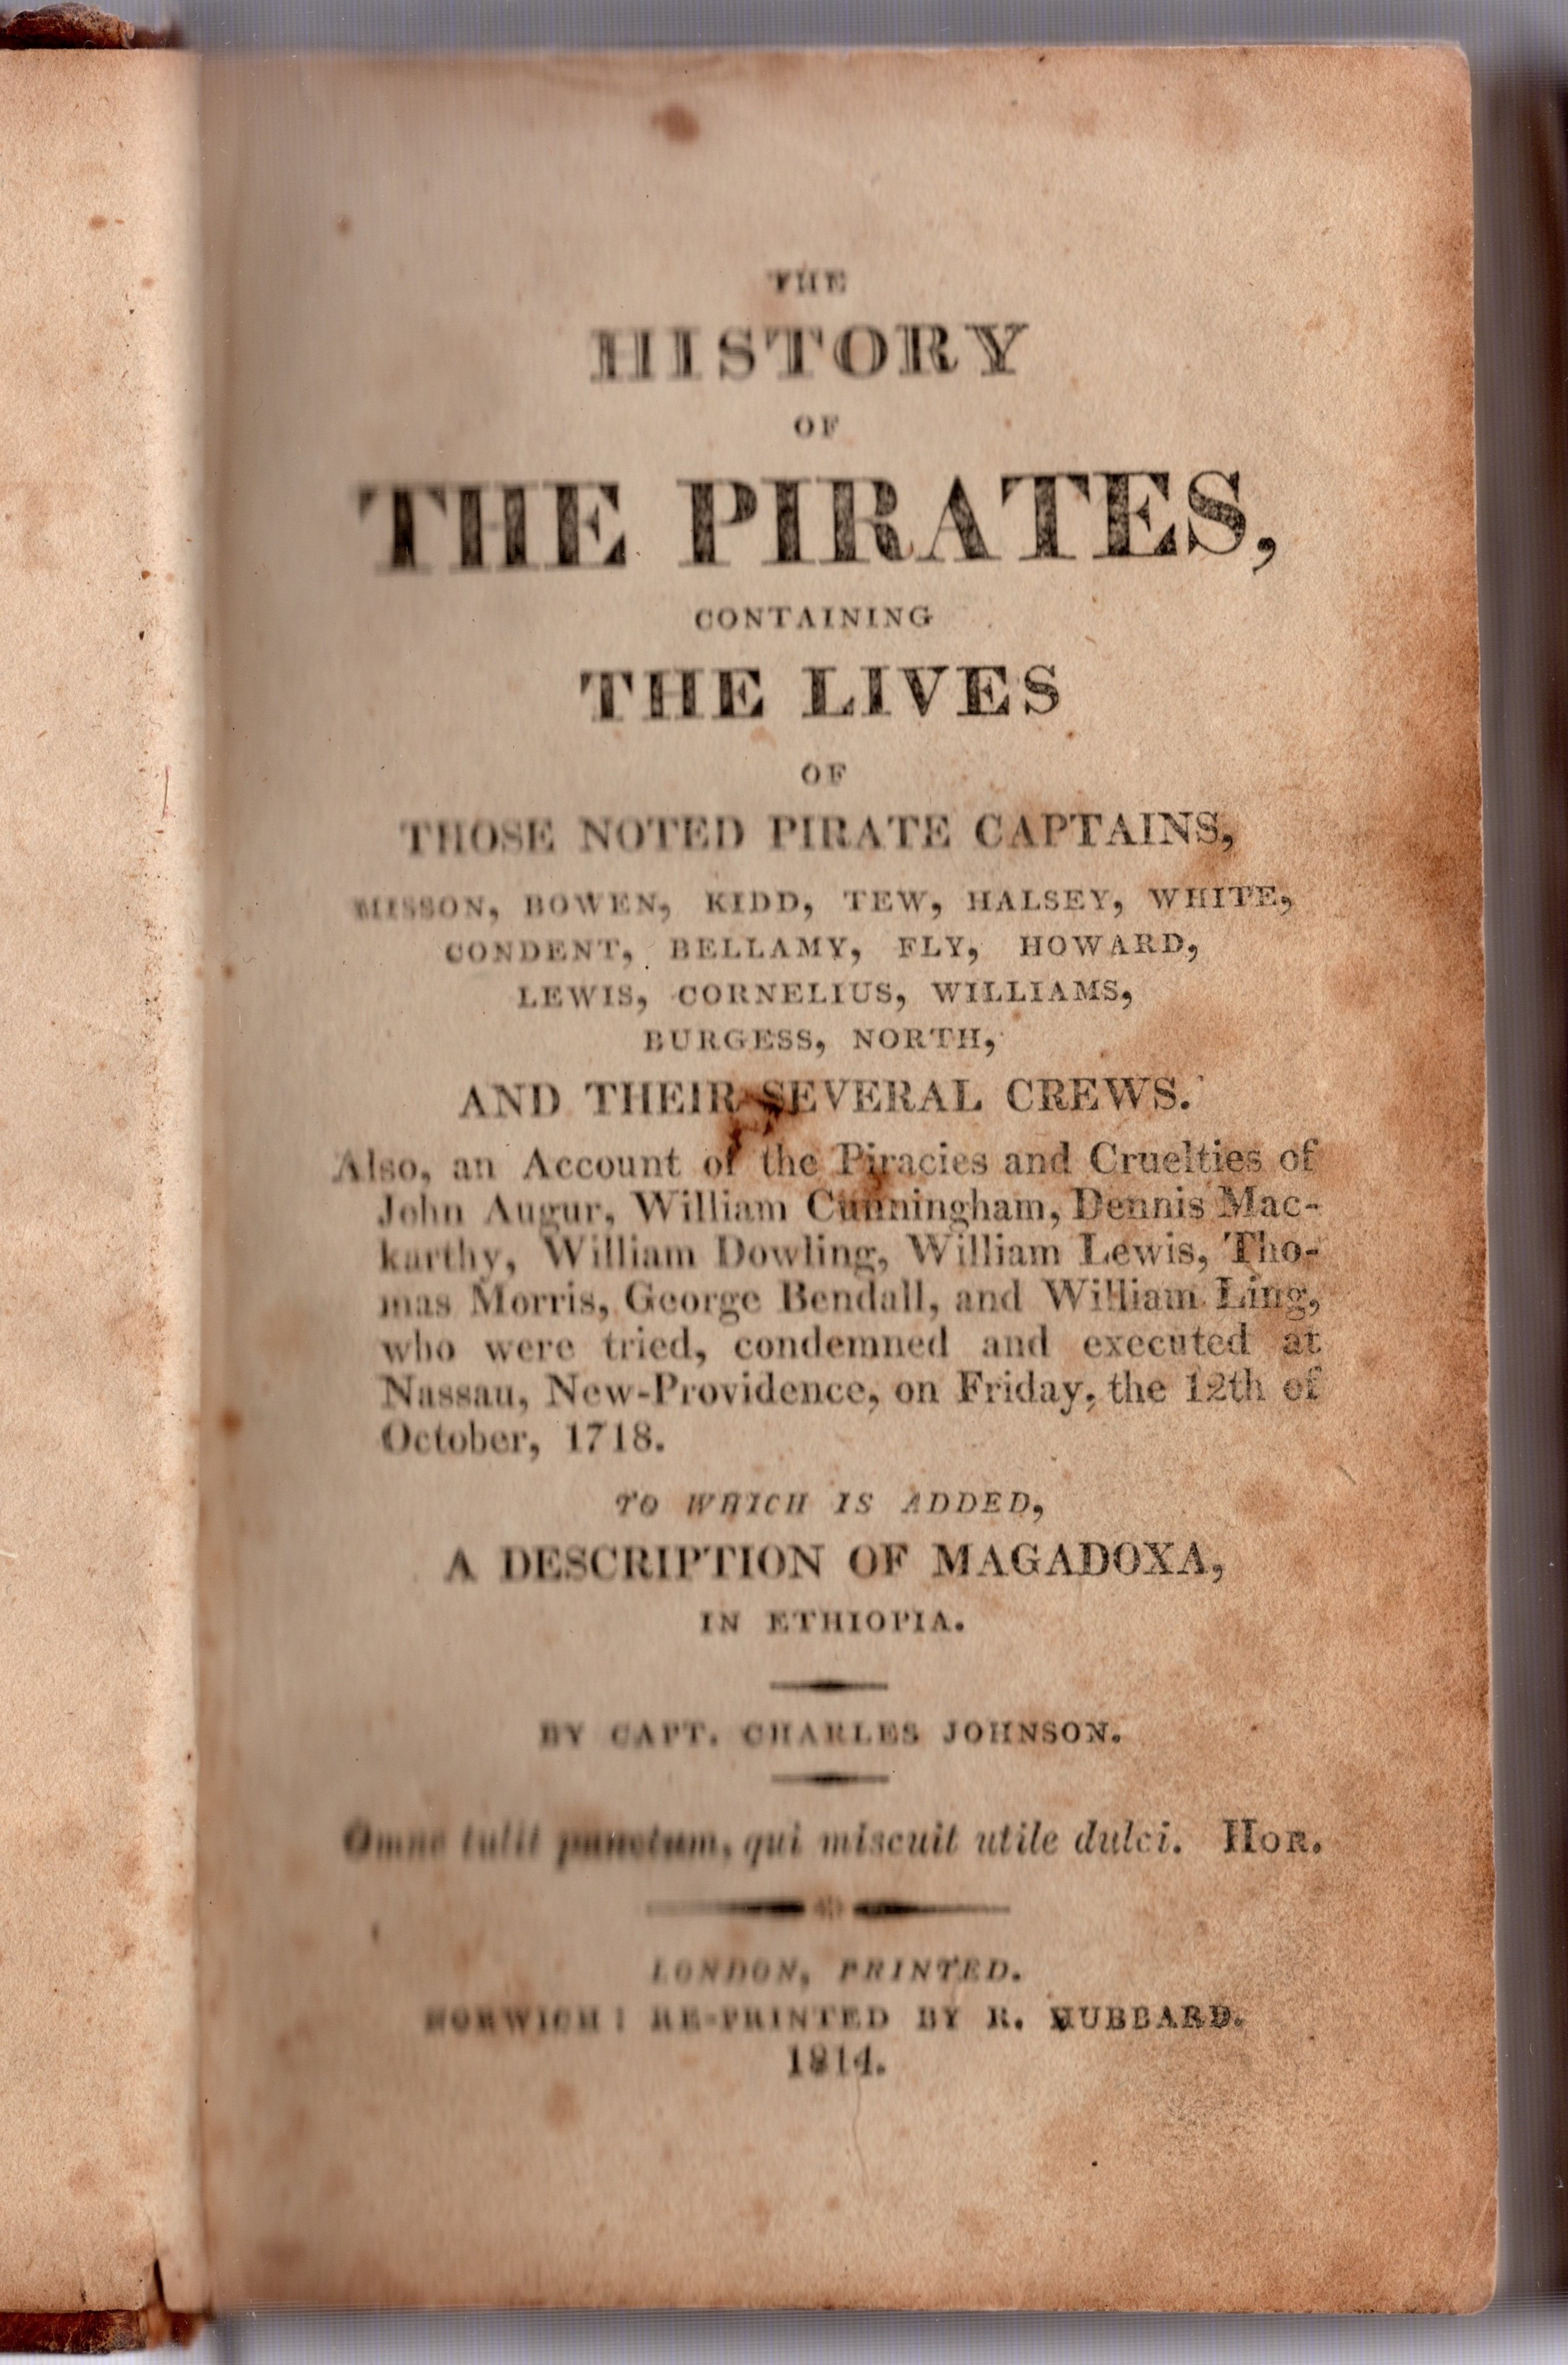 Image for The History of the Pirates, Containing the Lives of Those Noted Pirate Captains, Misson, Bowen, Kidd, Tew, Halsey, White, Condent, Bellamy, Fly, Howard, Lewis, Cornelius, Williams, Burgess, North, and Their Several Crews